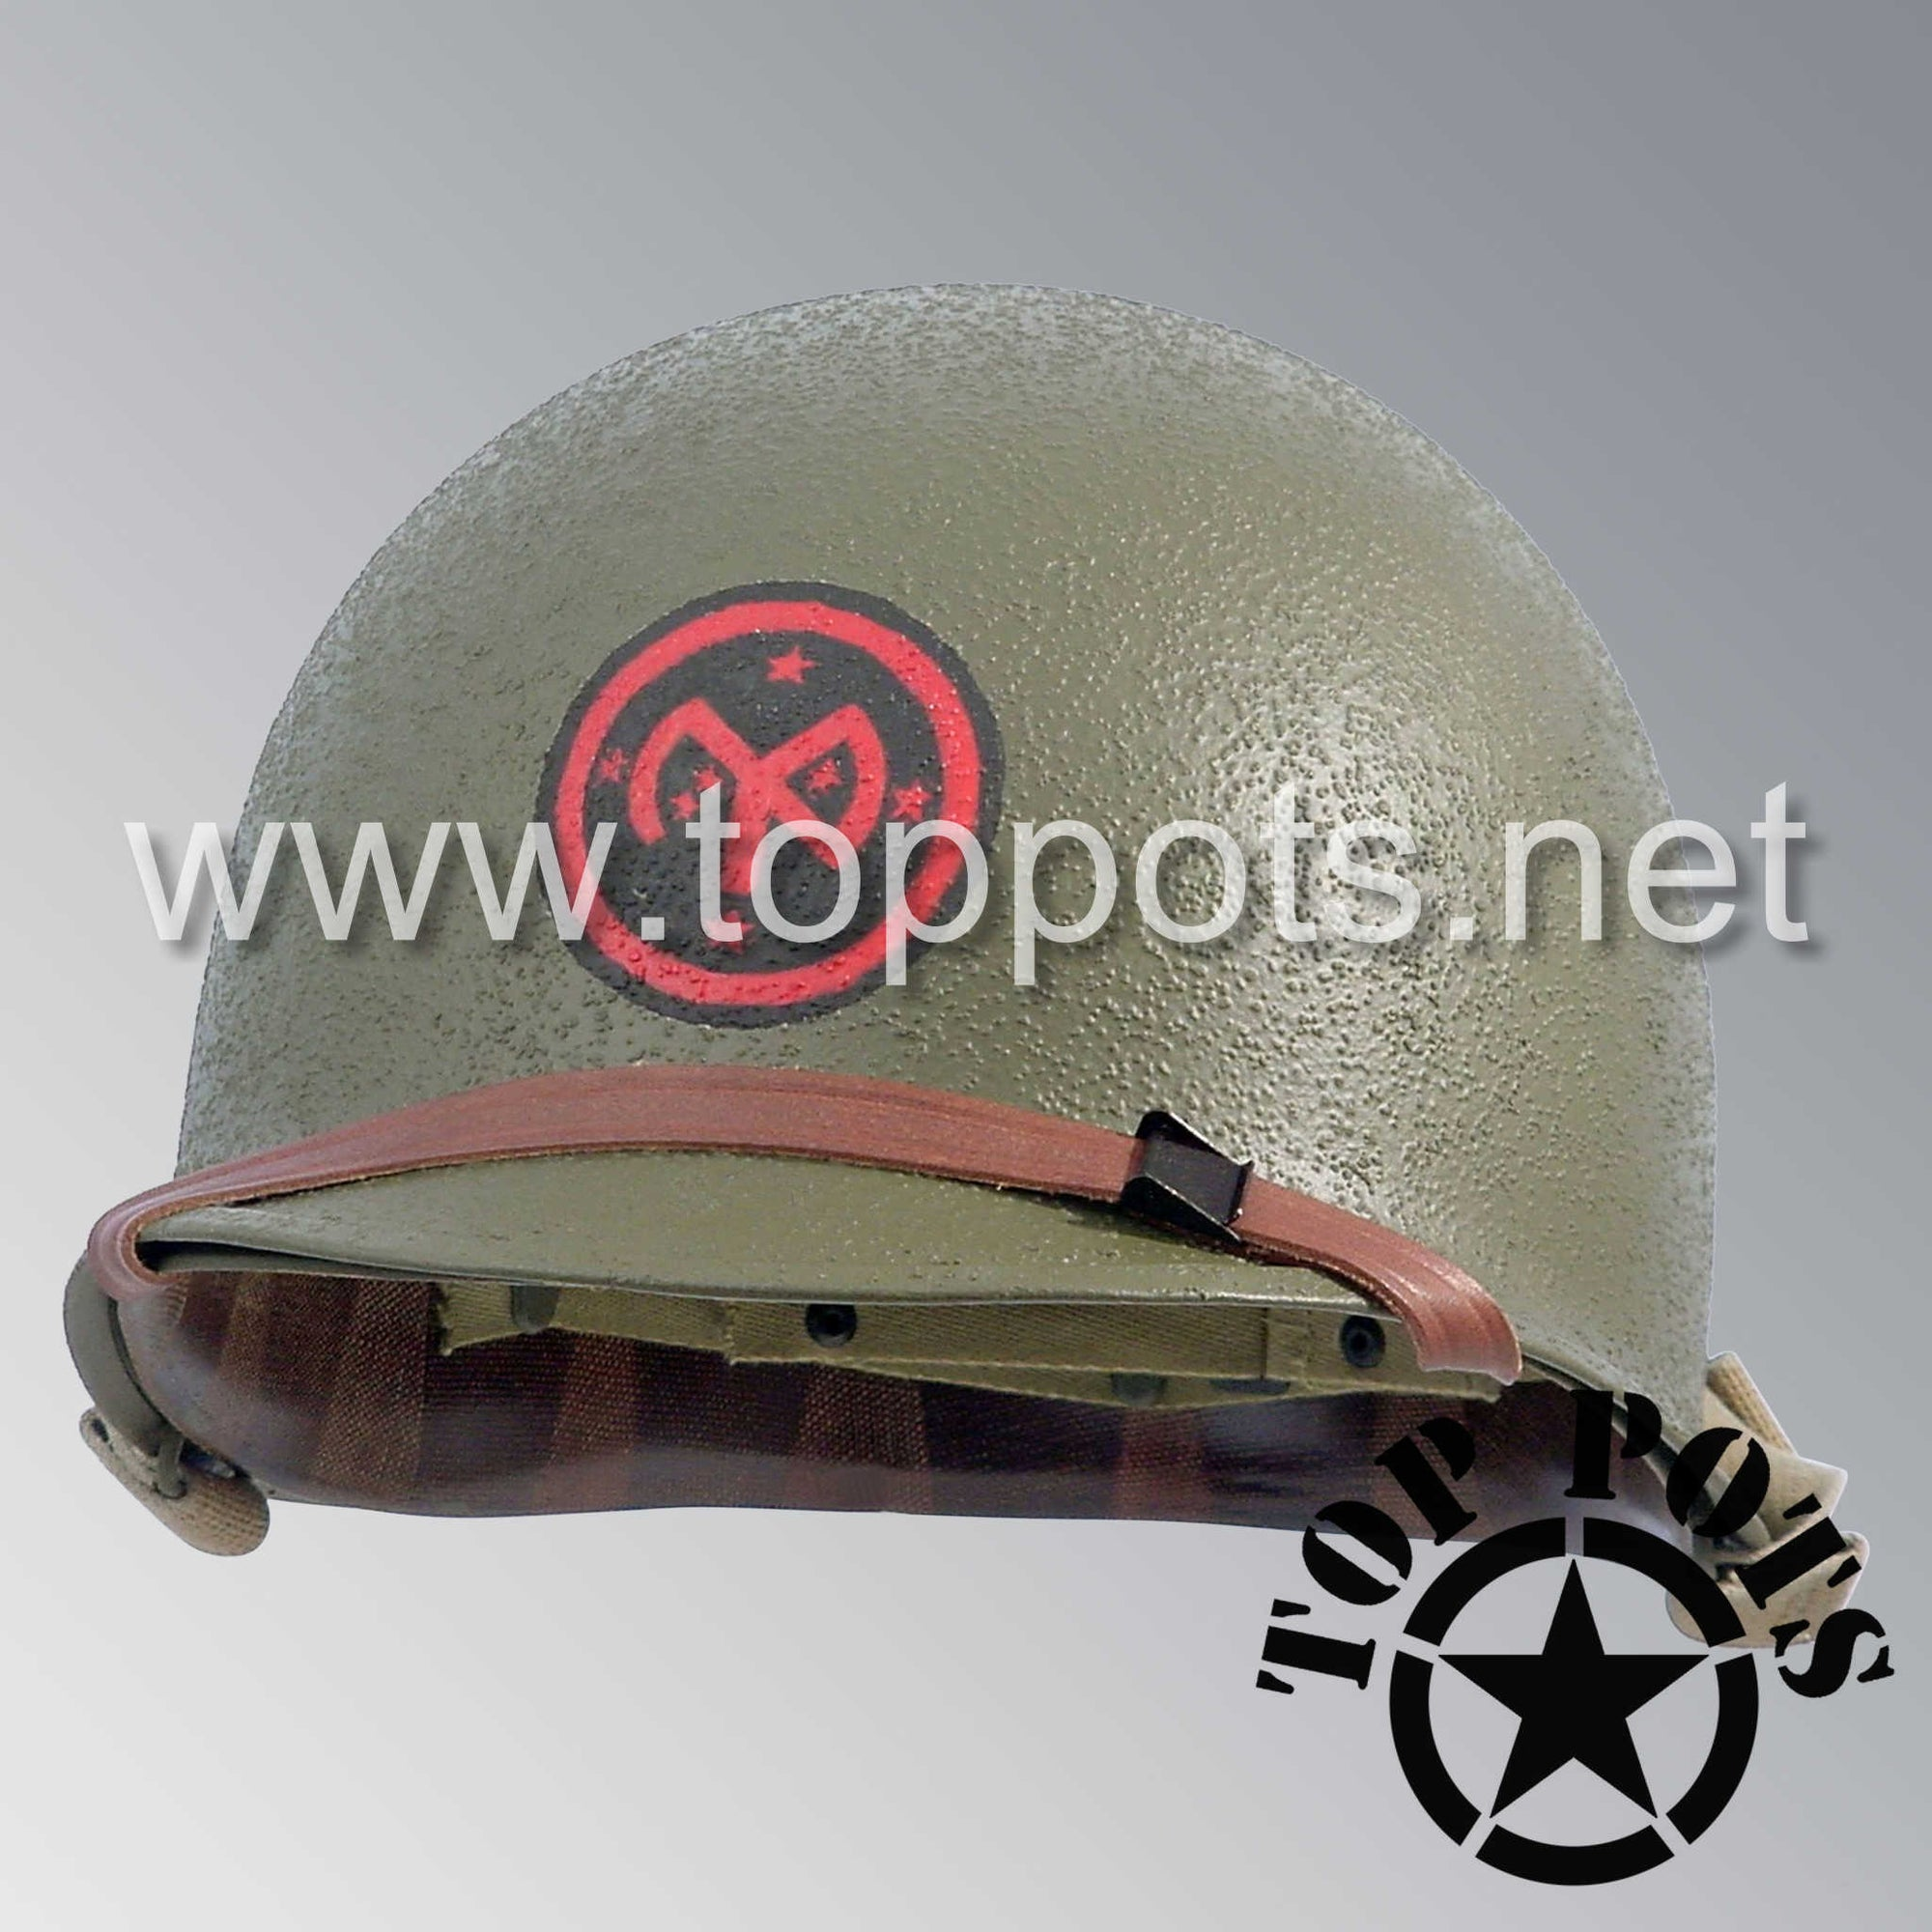 Image 1 of WWII US Army Restored Original M1 Infantry Helmet Swivel Bale Shell and Liner with 27th Infantry Division Emblem